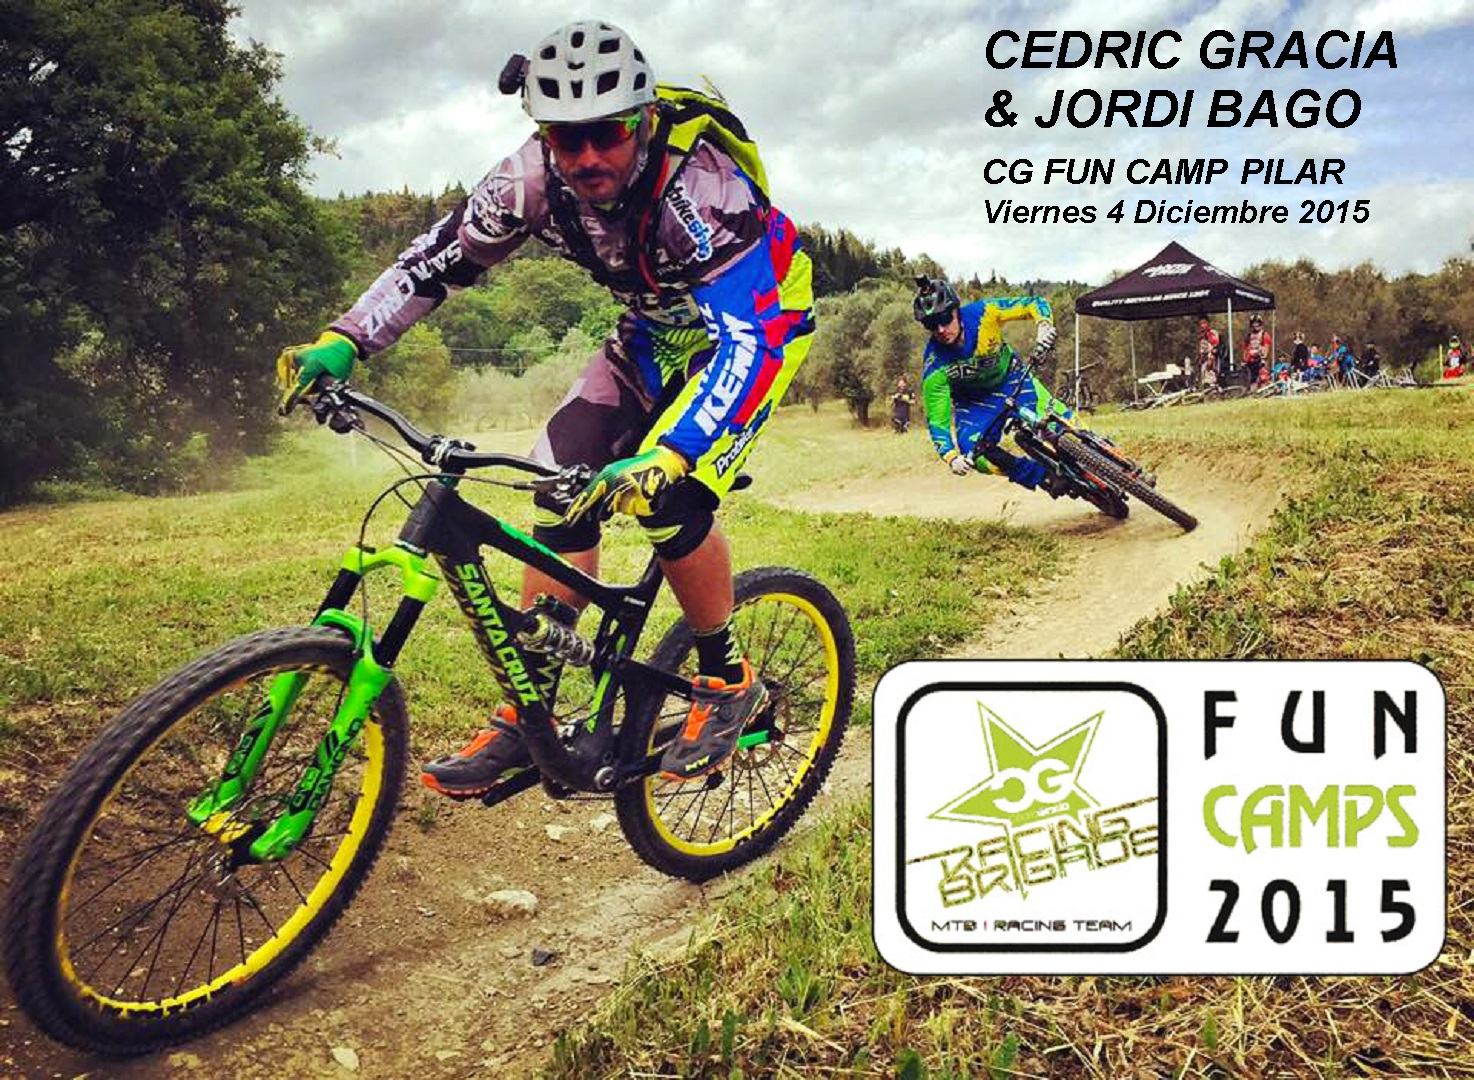 cedric_gracia_funcamps - Flyer